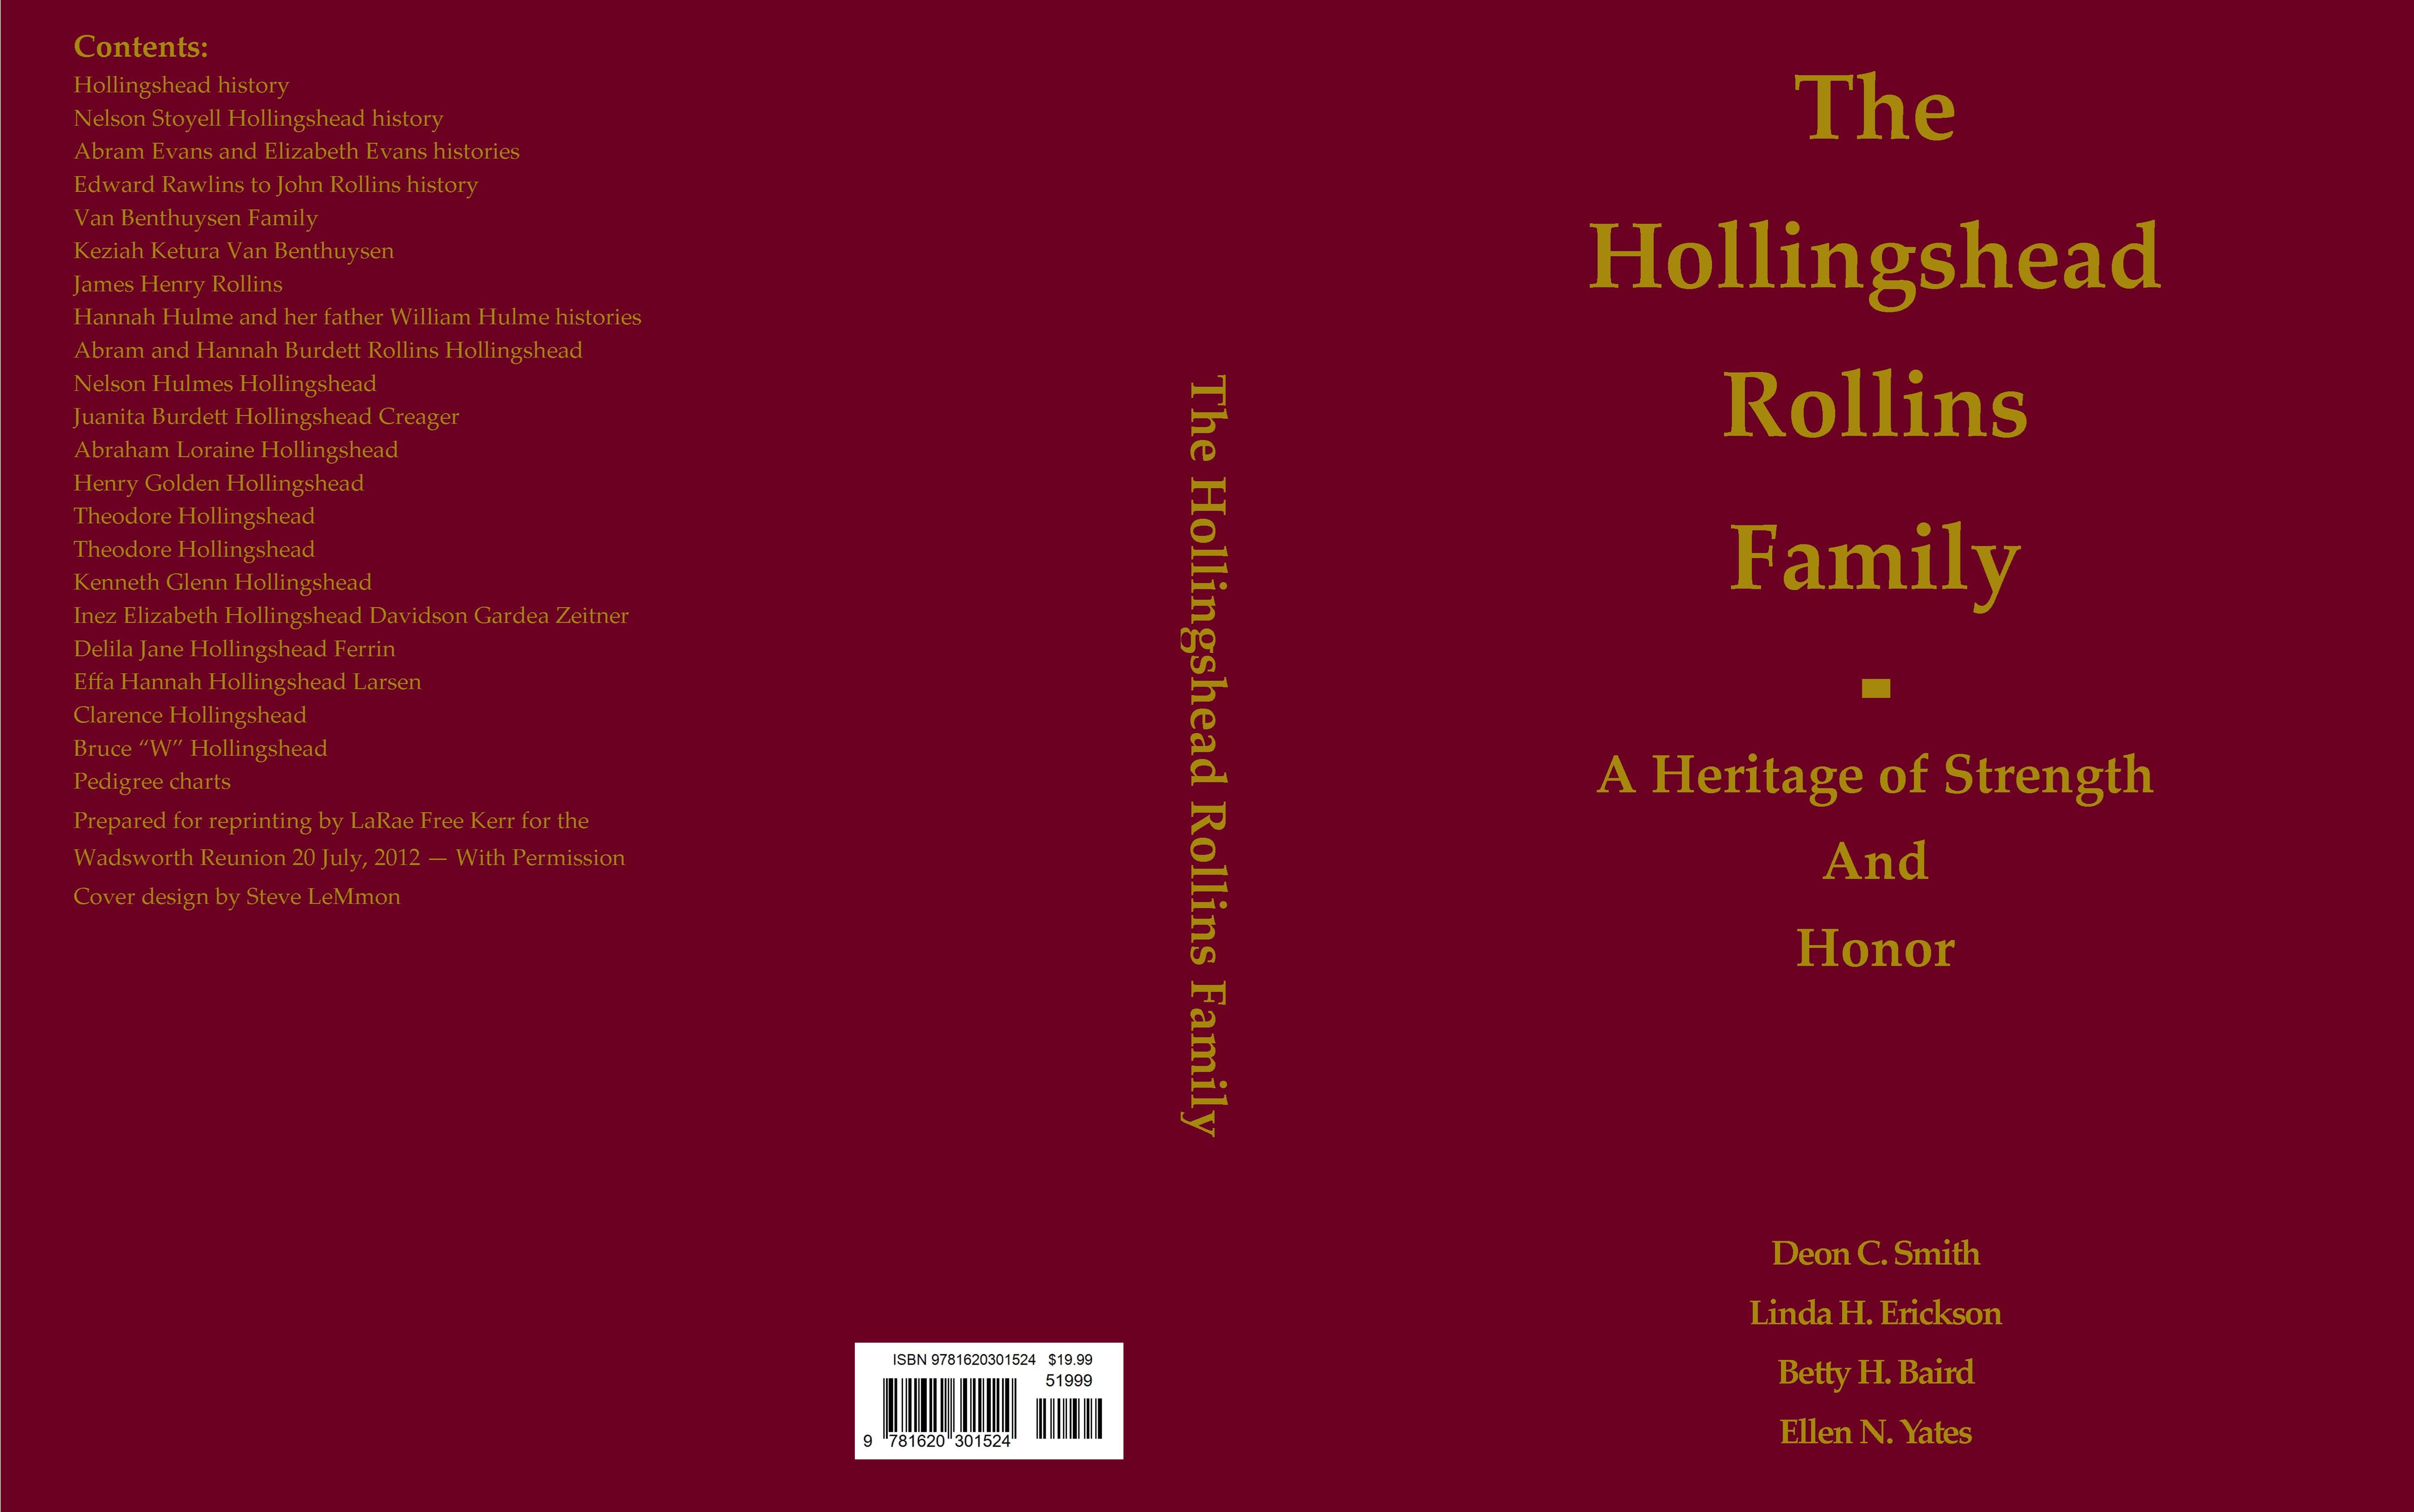 The Hollingshead Rollins Family cover image